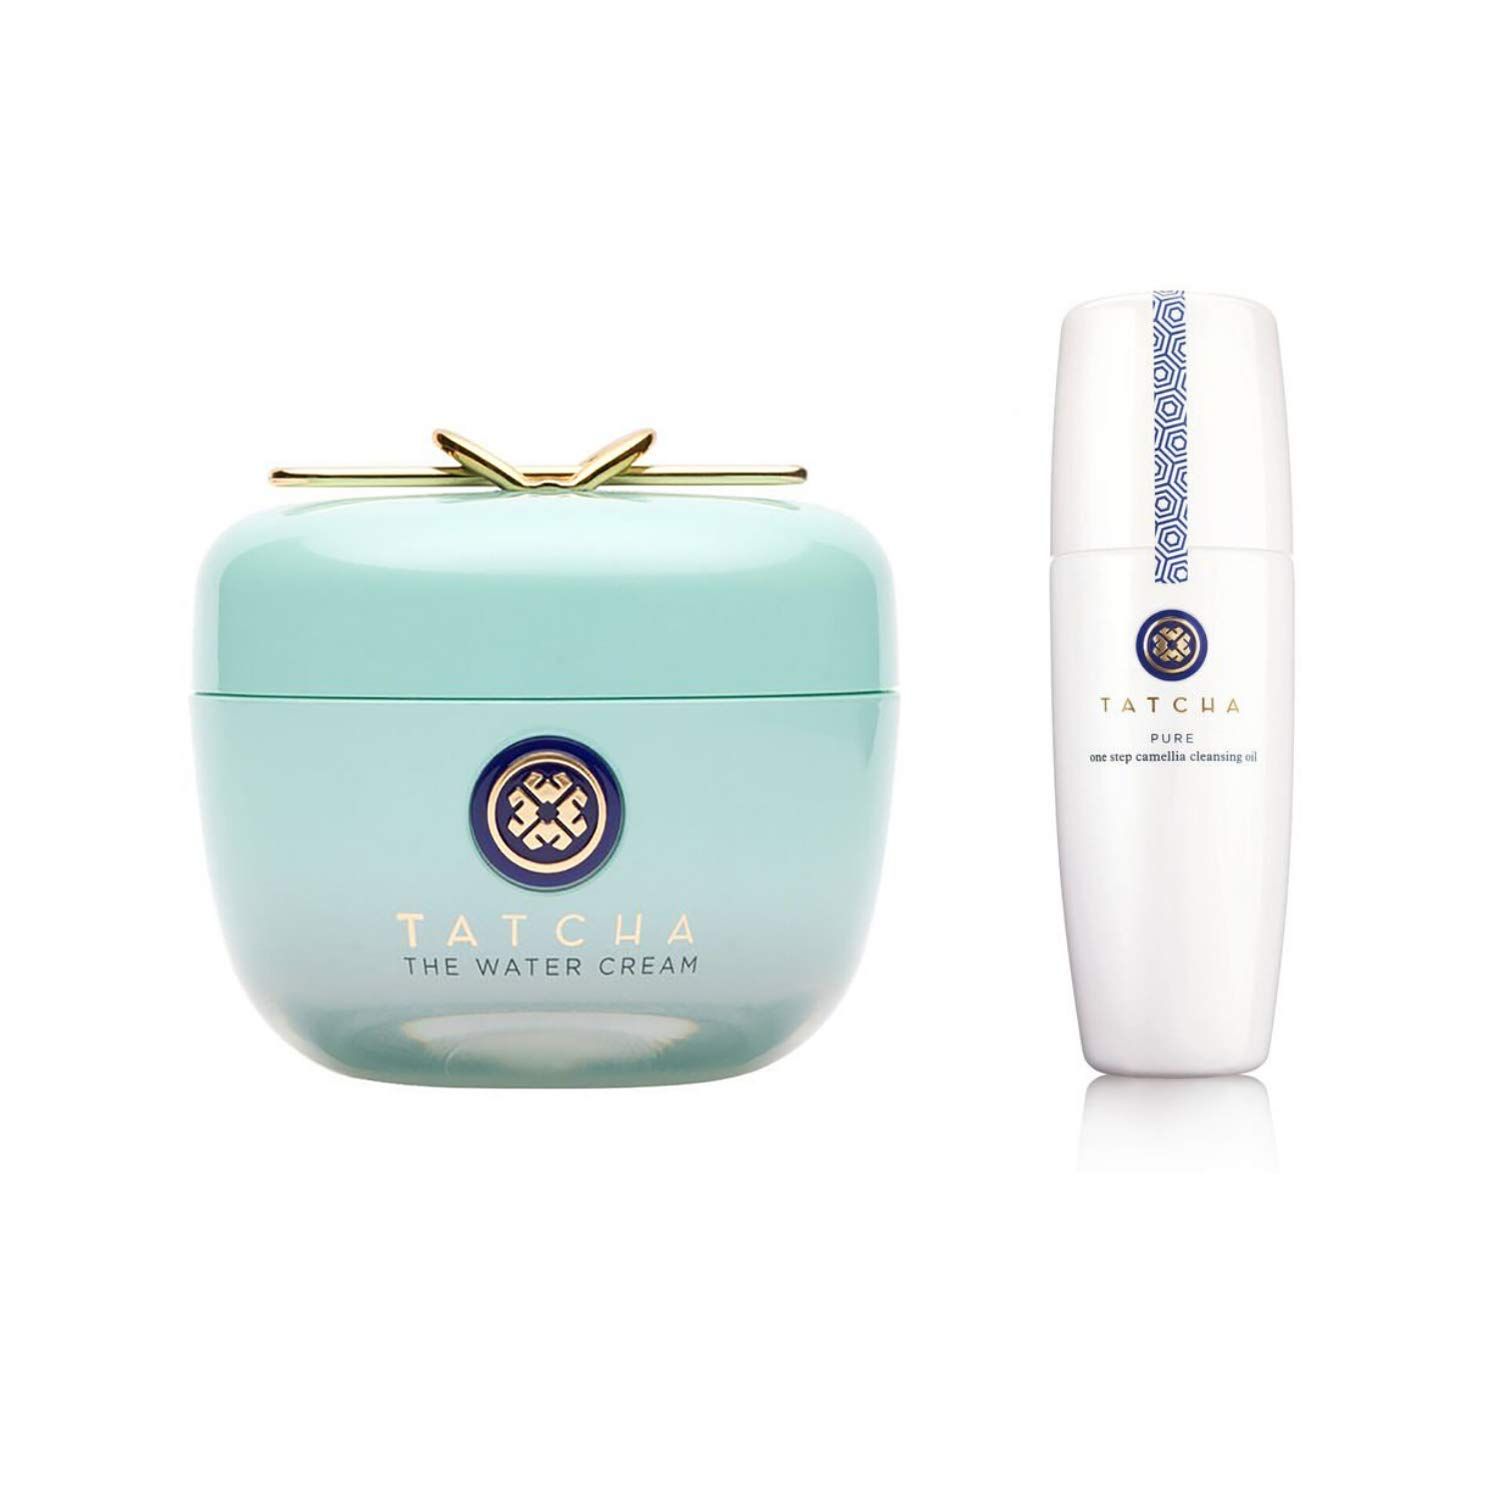 Tatcha Bundle Set: The Water Cream (50ml) & Pure One Step Camelia Cleansing Oil (150ml): 2 in 1 Makeup Remover + Skin Moisturizer Reduce Appearance of Fine Lines